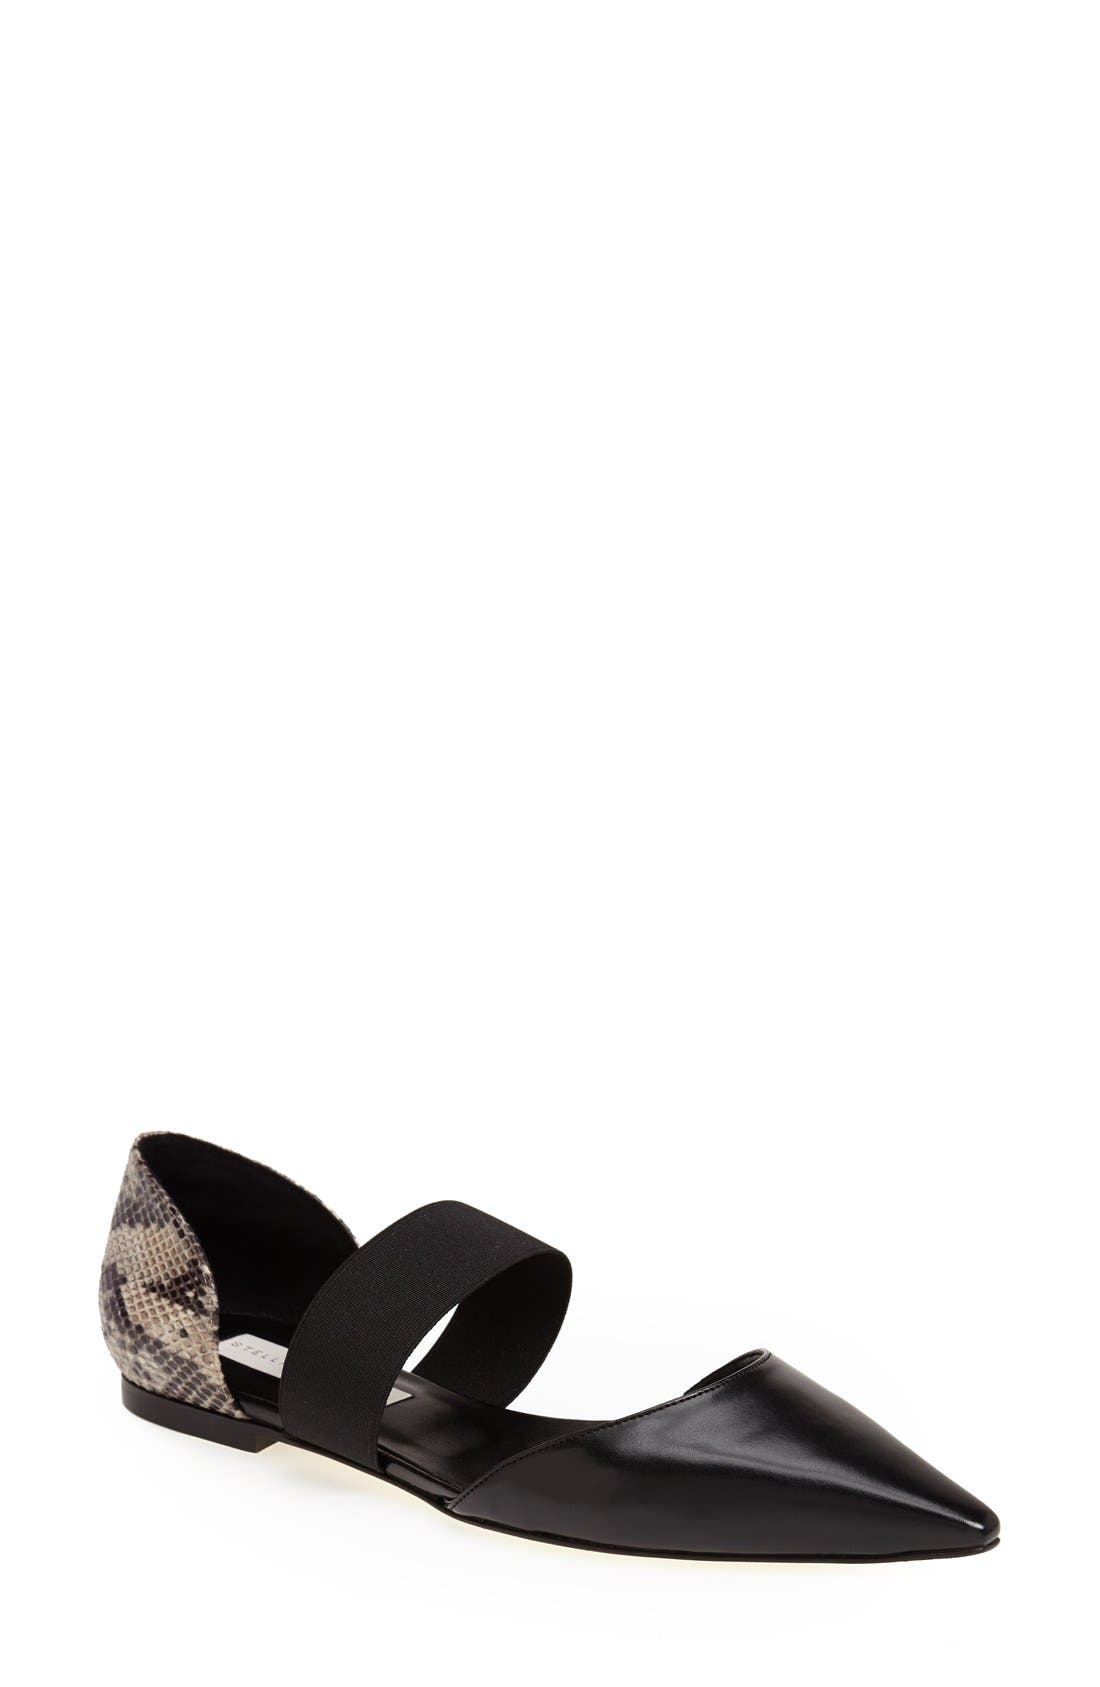 Main Image - Stella McCartney Python Print Flat (Women)